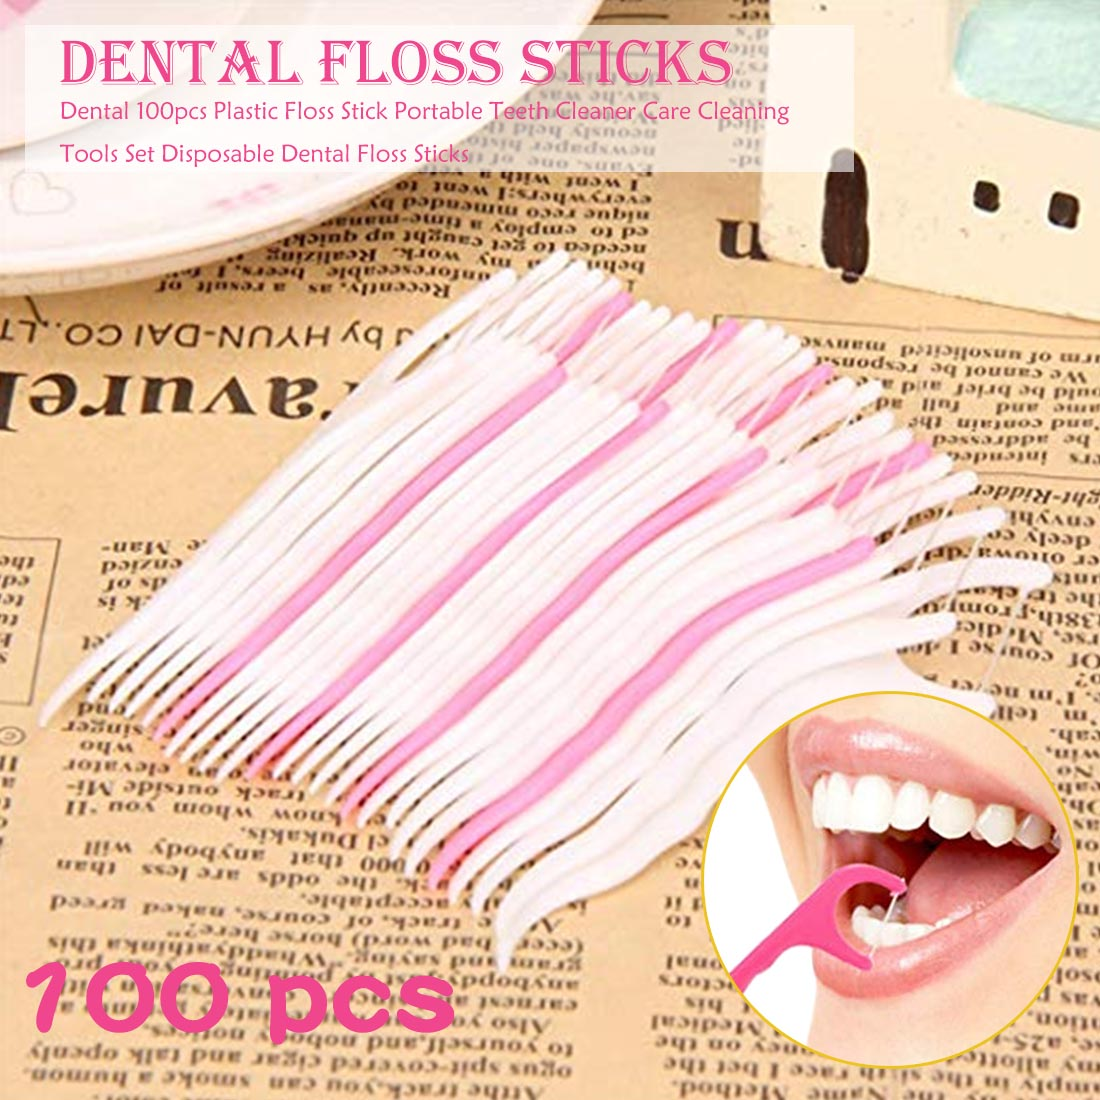 100pcs Portable Teeth Care Cleaner Tooth Cleaning Tools Set For Oral Hygiene Plastic Dental Floss Stick Nylon Wire